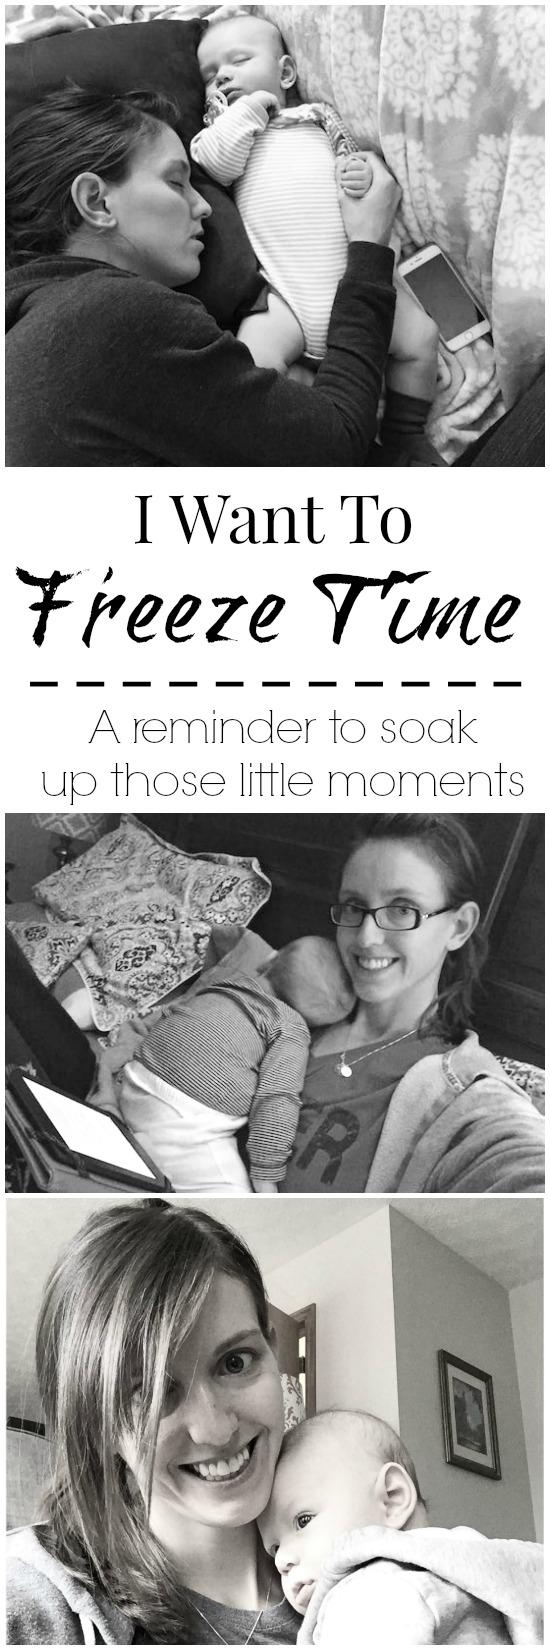 As a new mom, there will always be days that overwhelm you. Just a reminder to soak up those little moments.